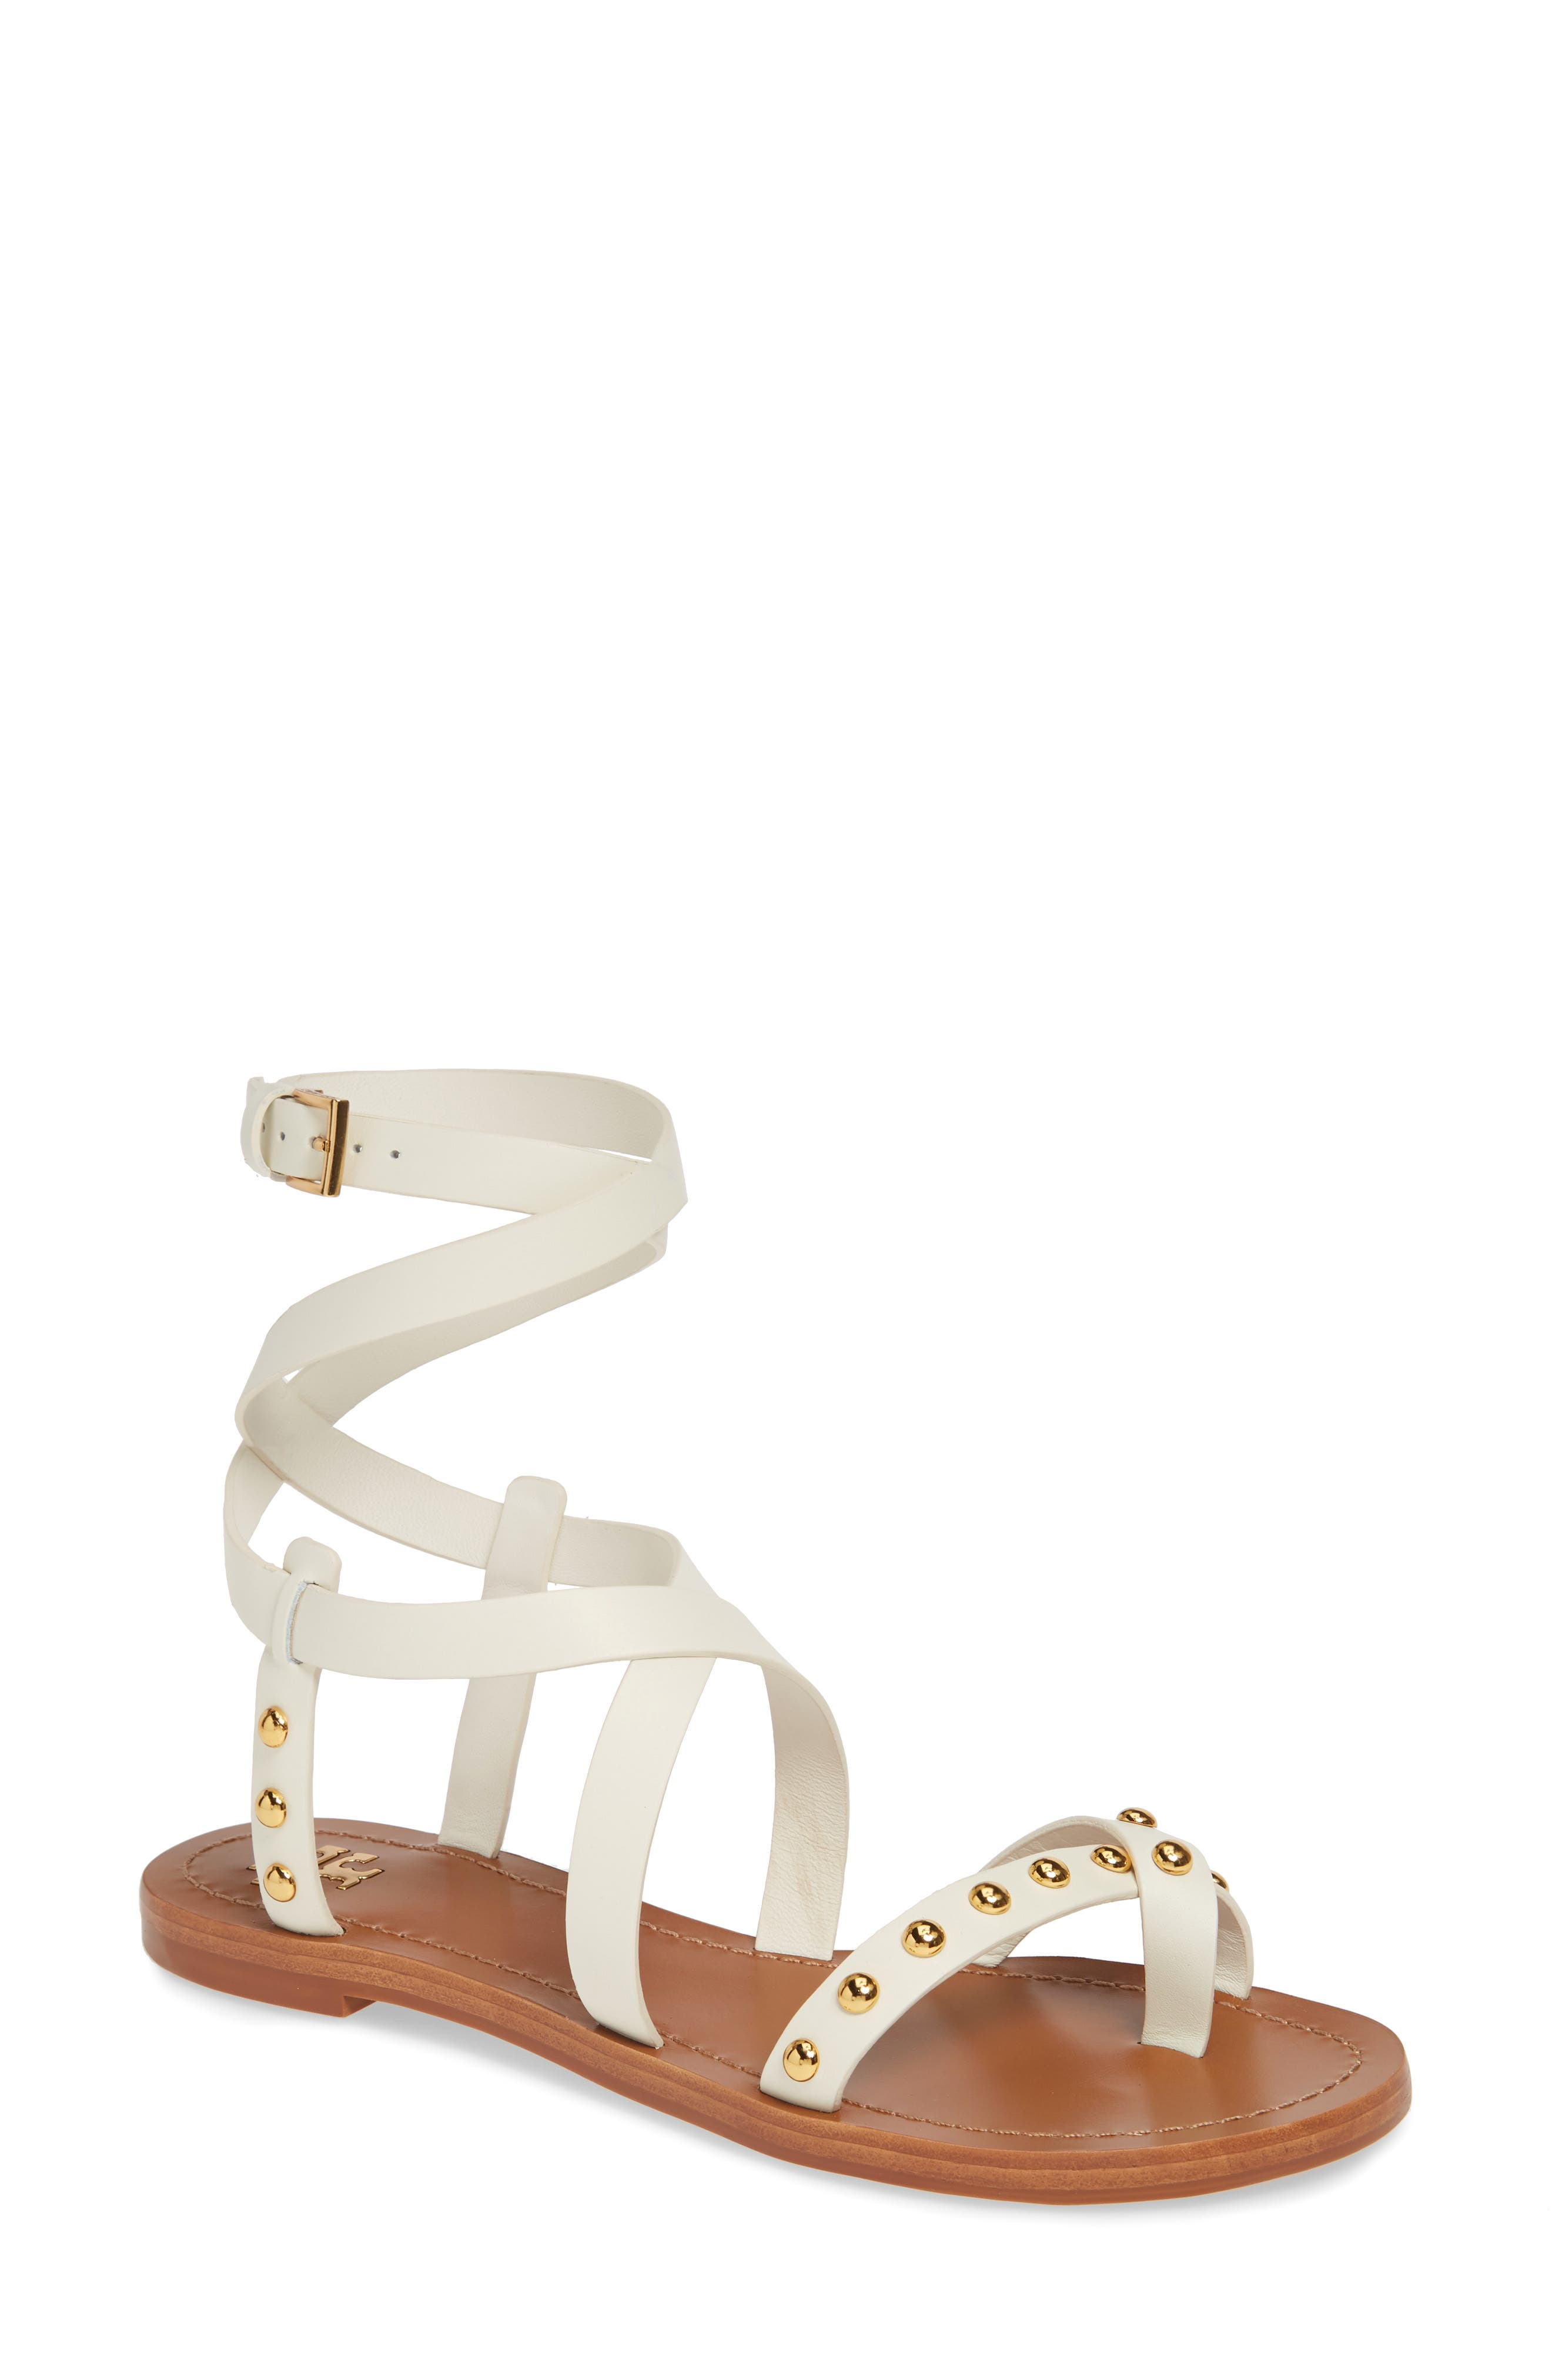 TORY BURCH Ravello Studded Cage Sandal, Main, color, PERFECT IVORY